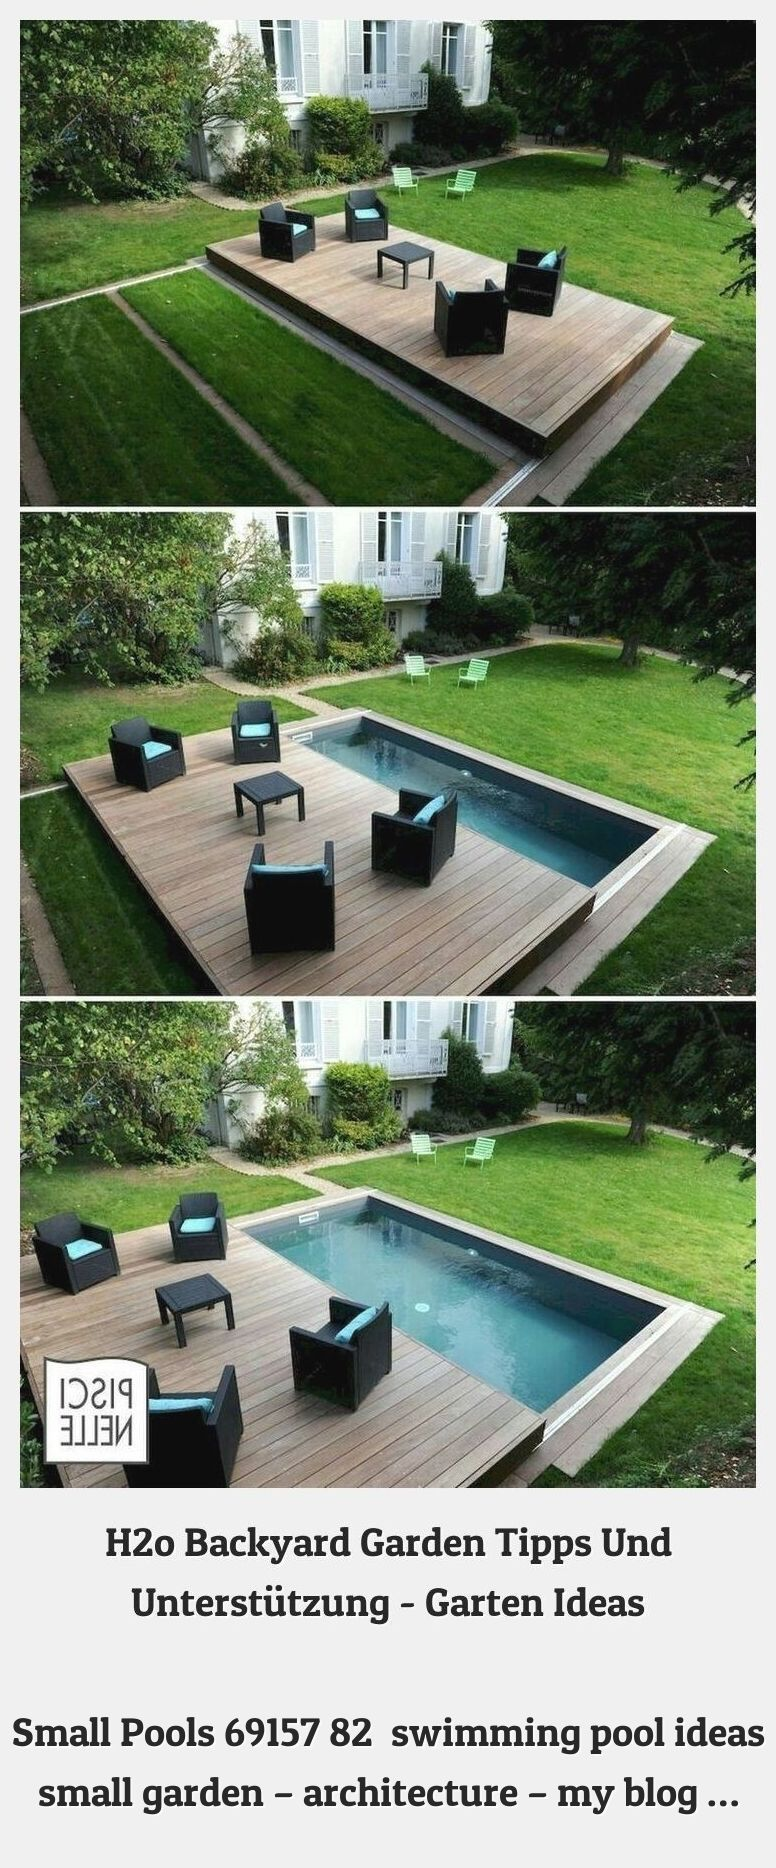 Diy Swimming Pool Small Pools 61798 Small Pools 69157 82 Swimming Pool Ideas Small Garden Architecture My Blog In 2020 Diy Swimming Pool Small Pools Swimming Pools